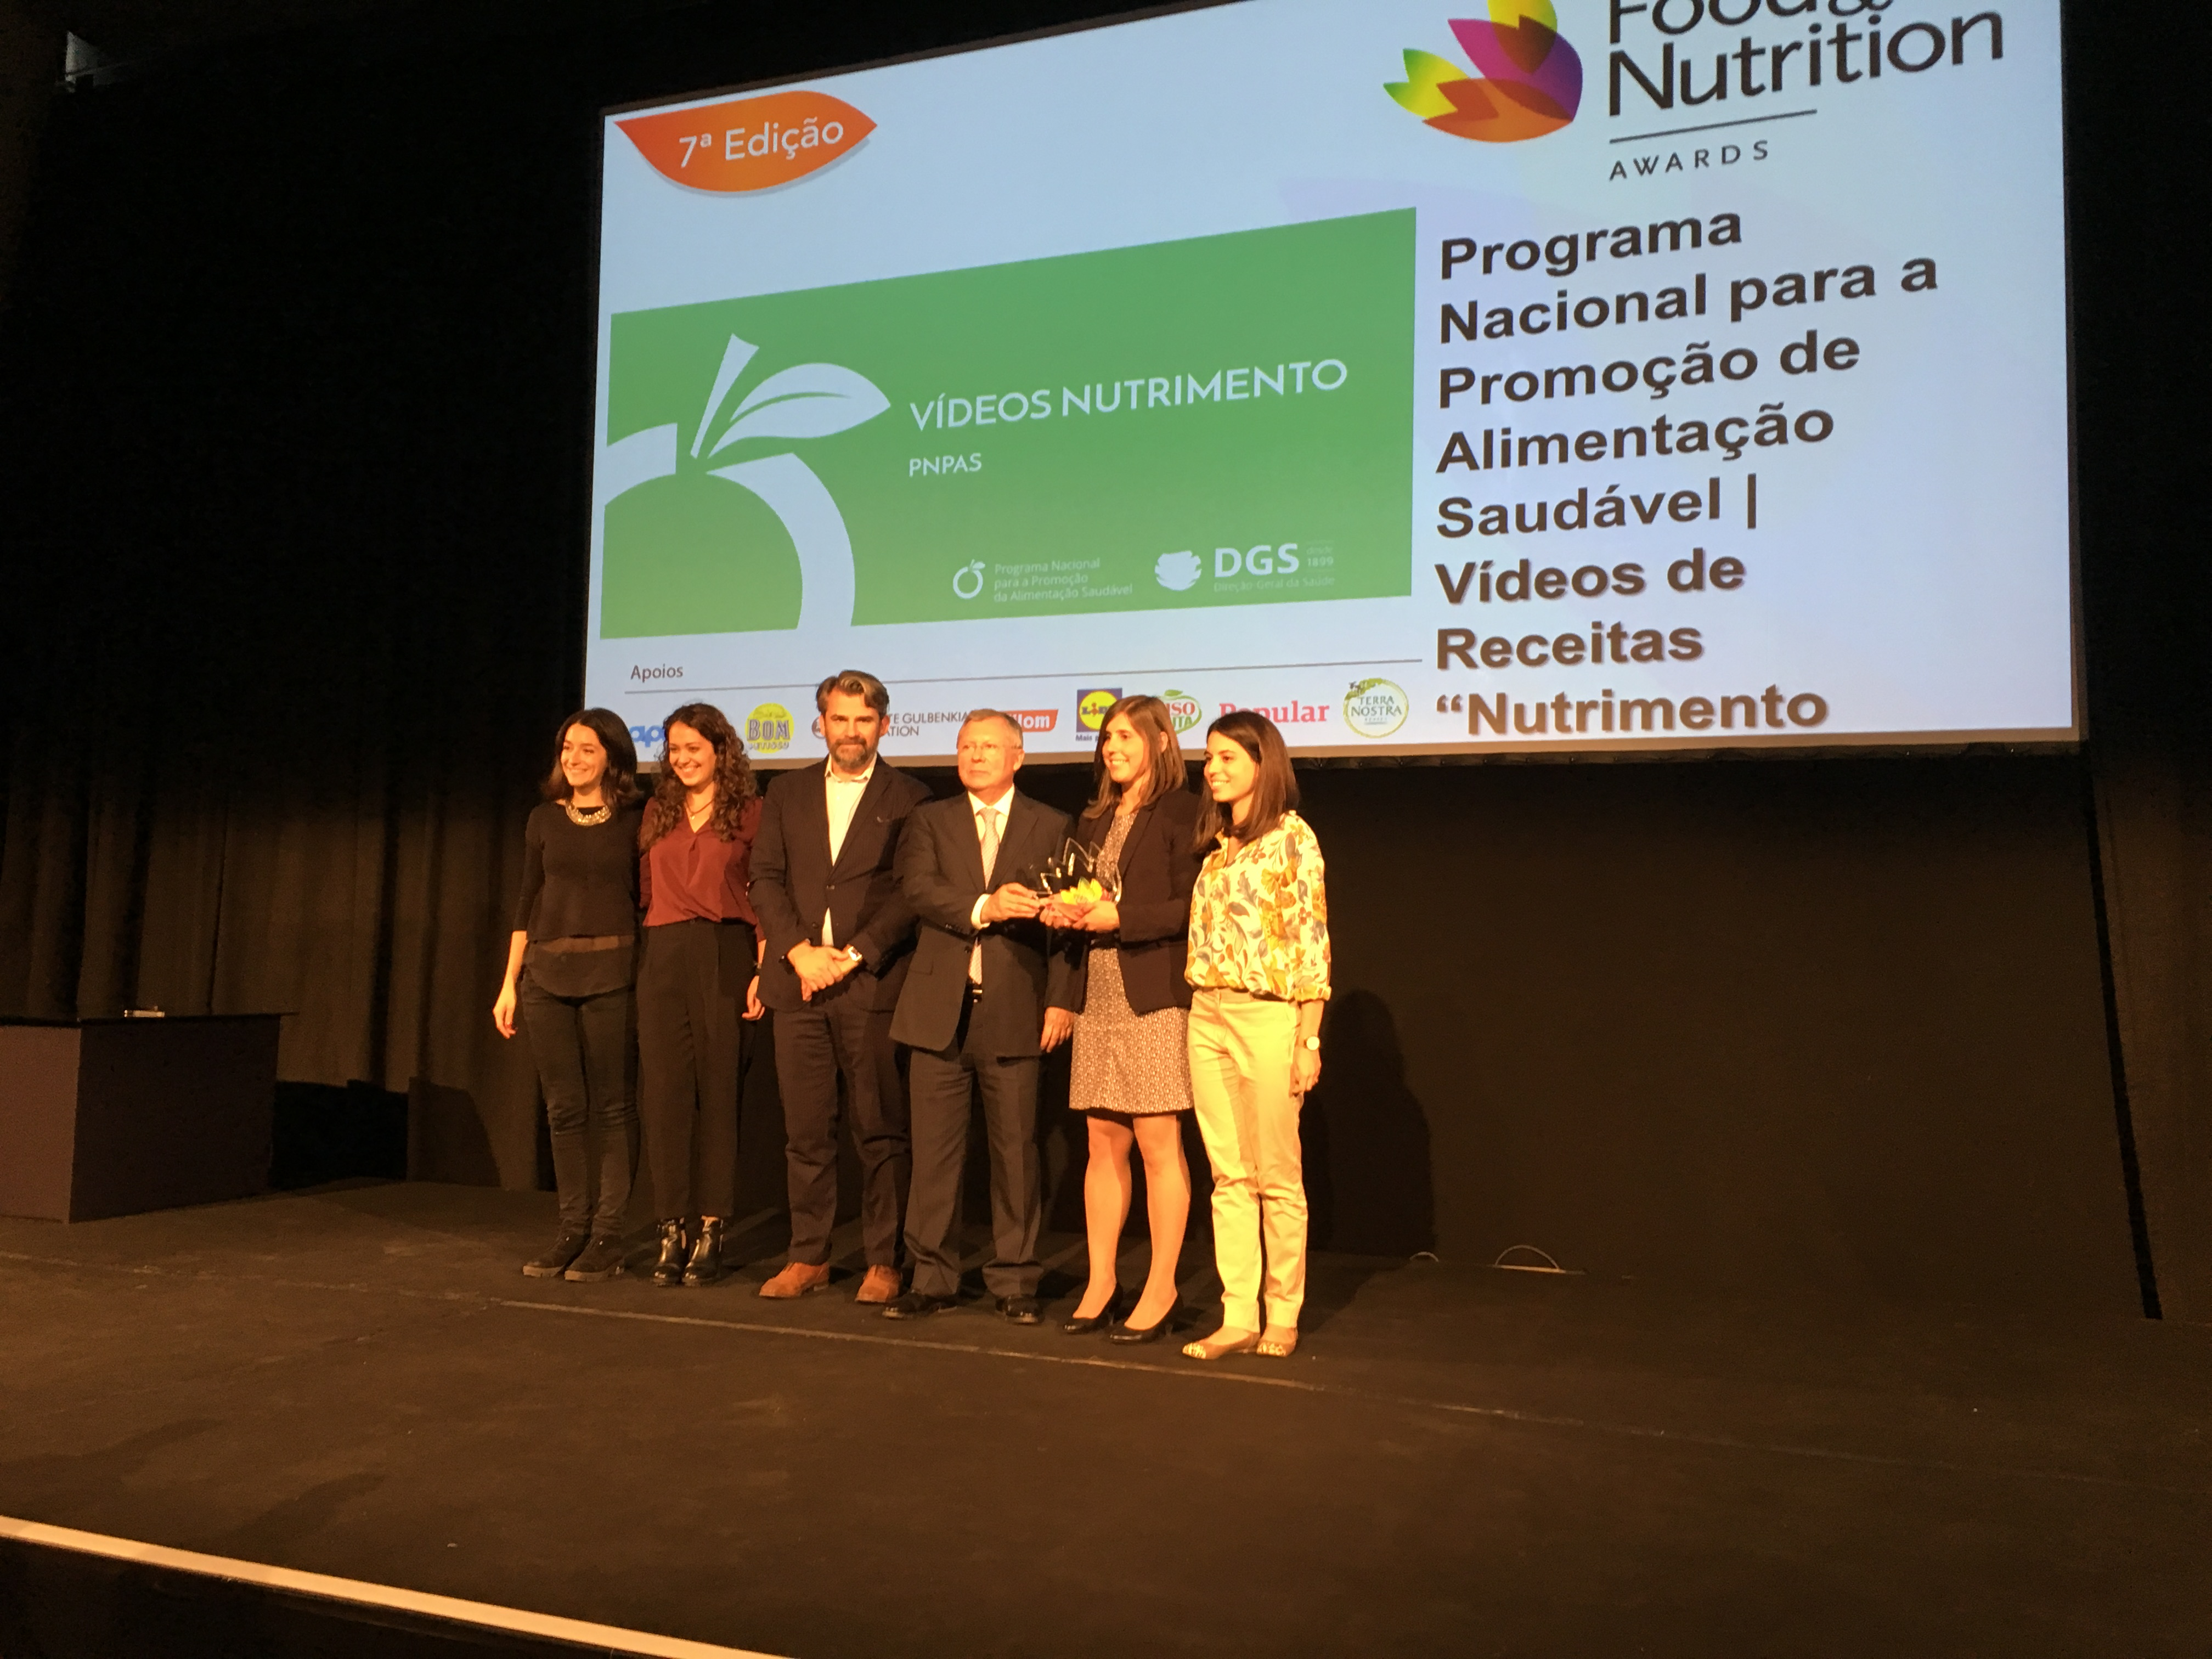 Prémios Food & Nutrition Awards